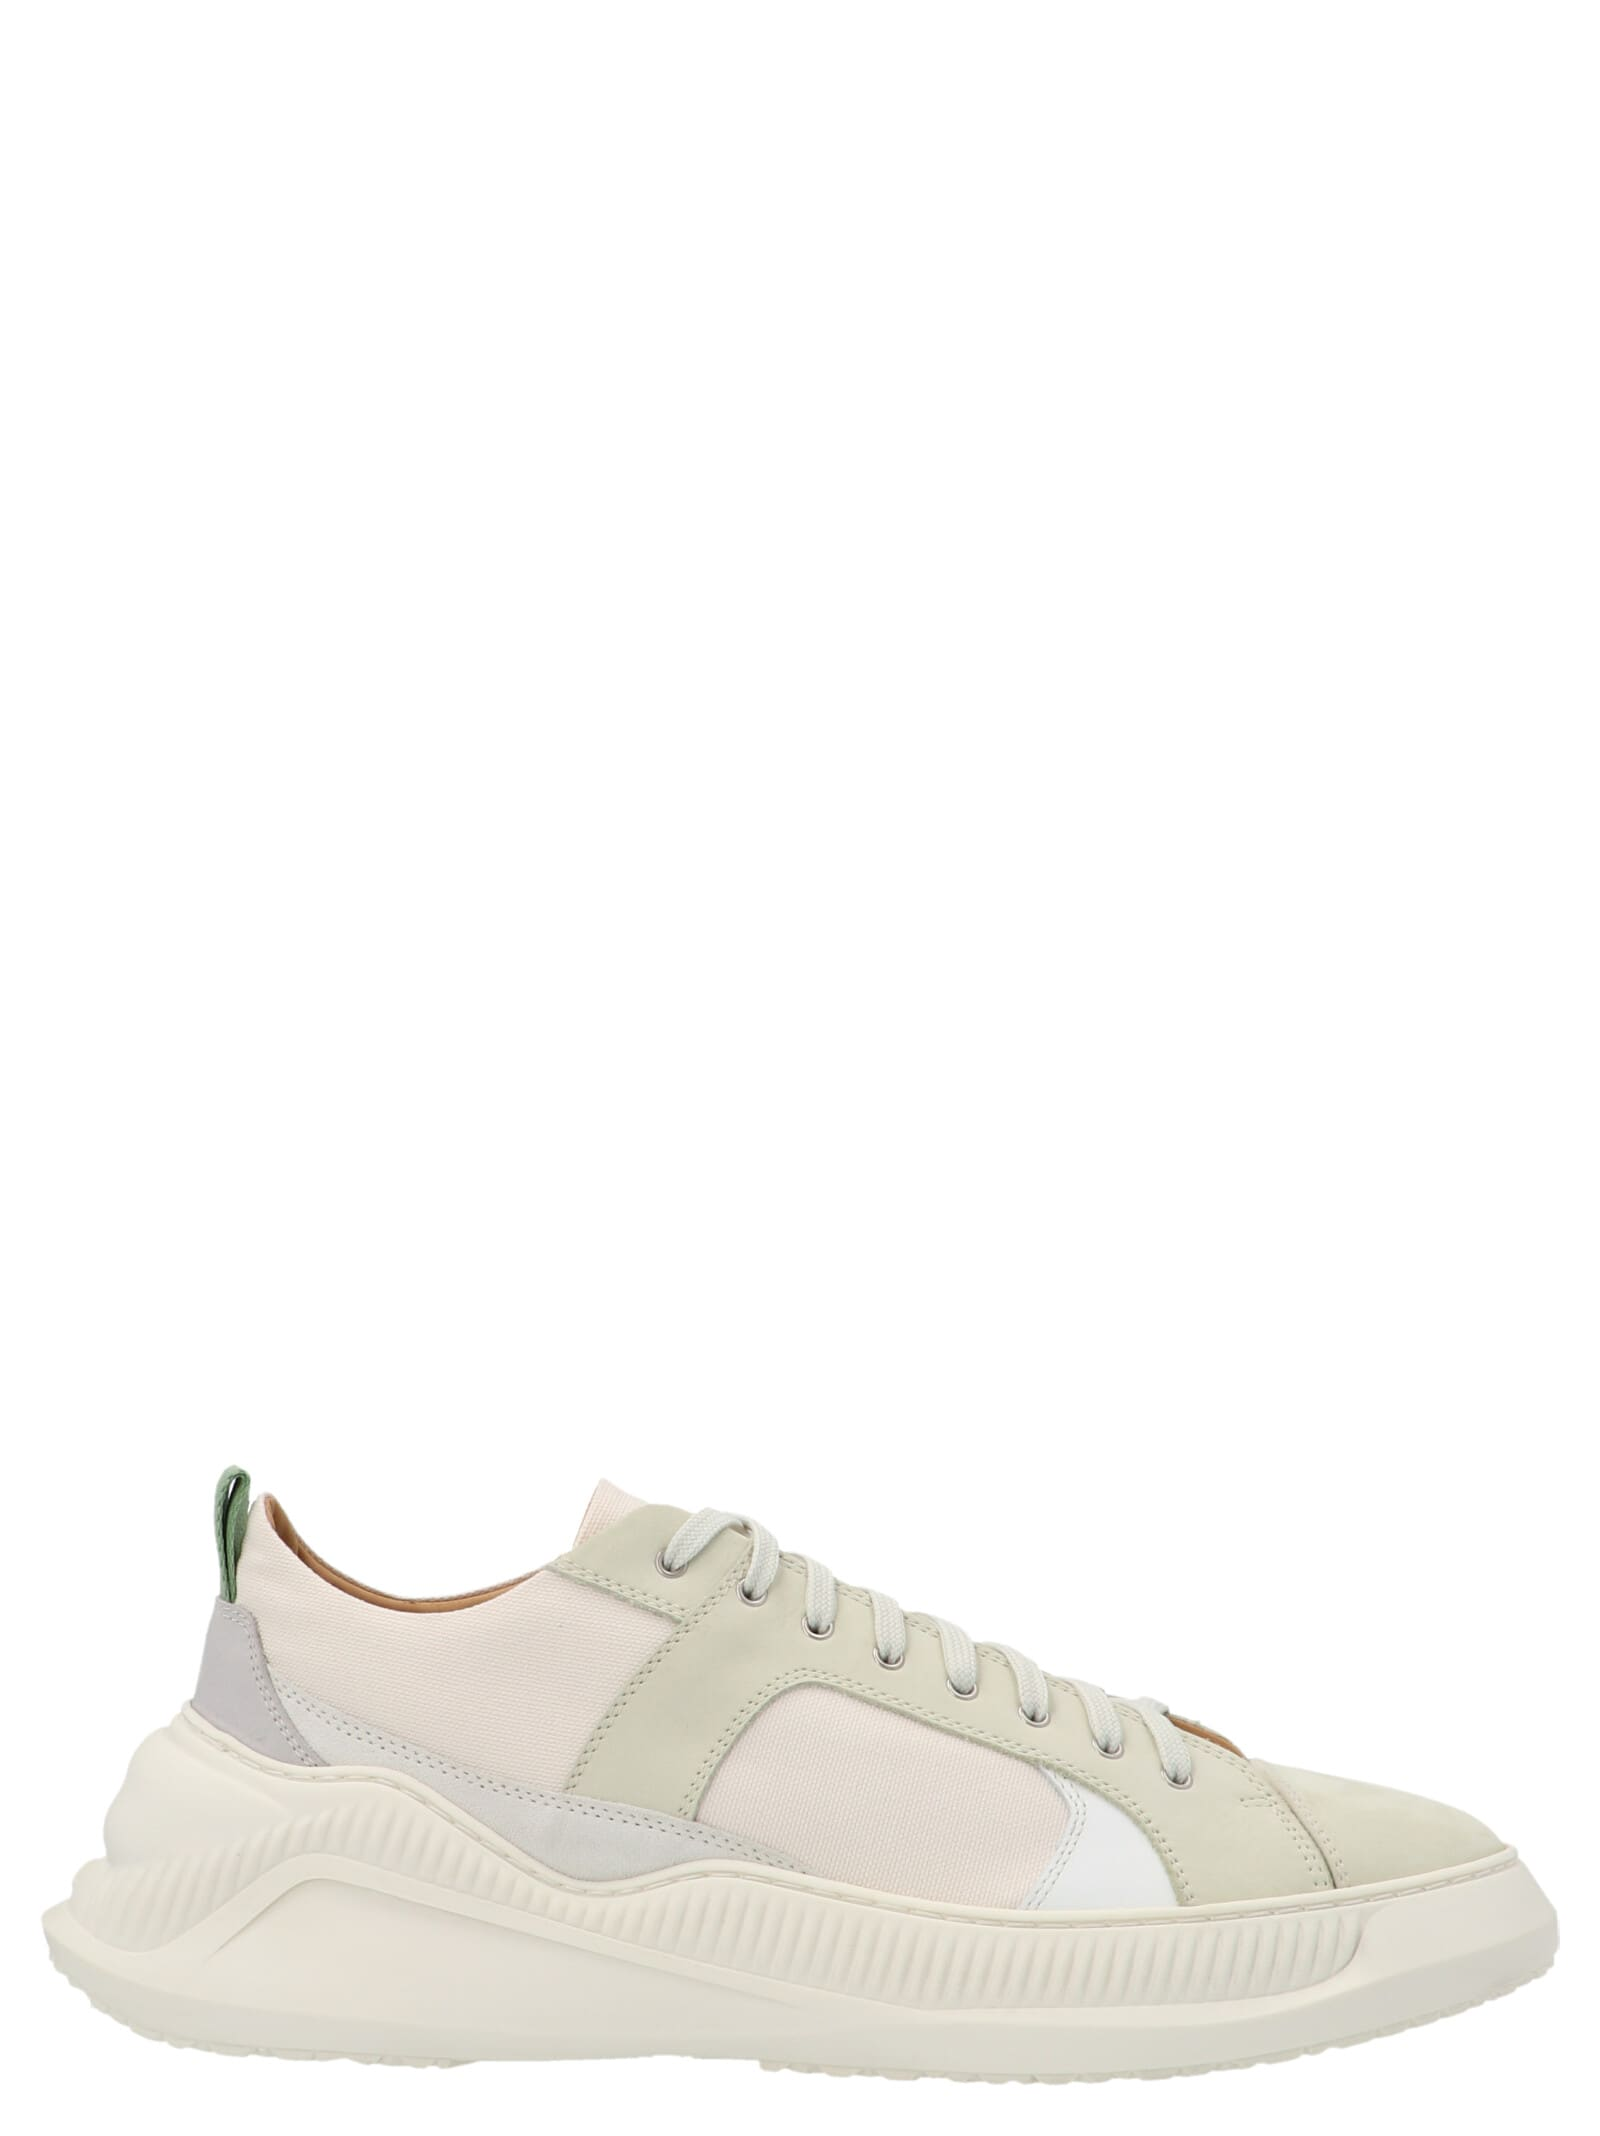 Oamc OAMC FREE SOLO LOW SHOES